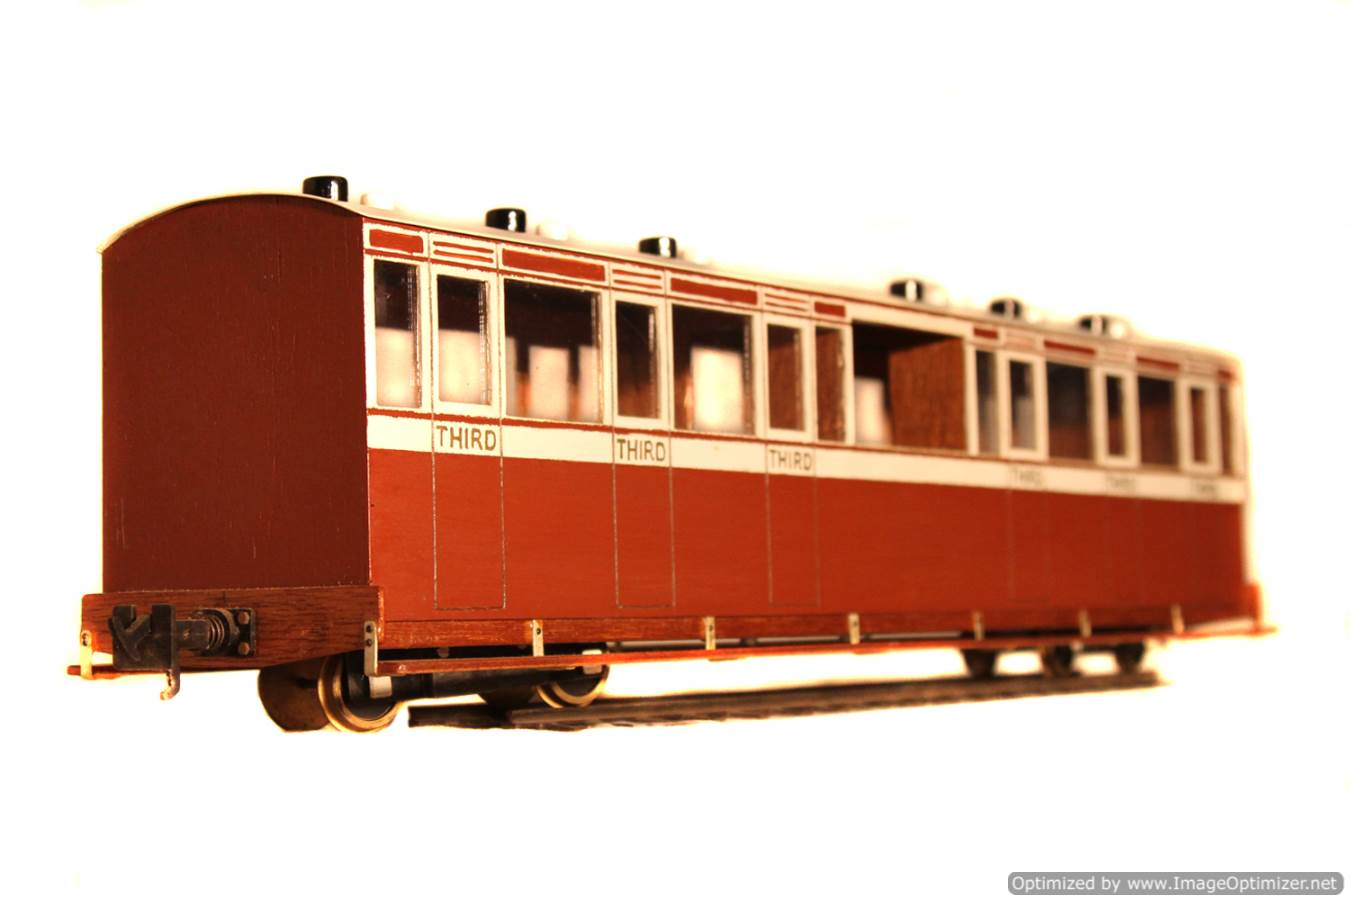 test L&B 32mm Garden Rail live steam locomotive carriages for sale 11 Optimized